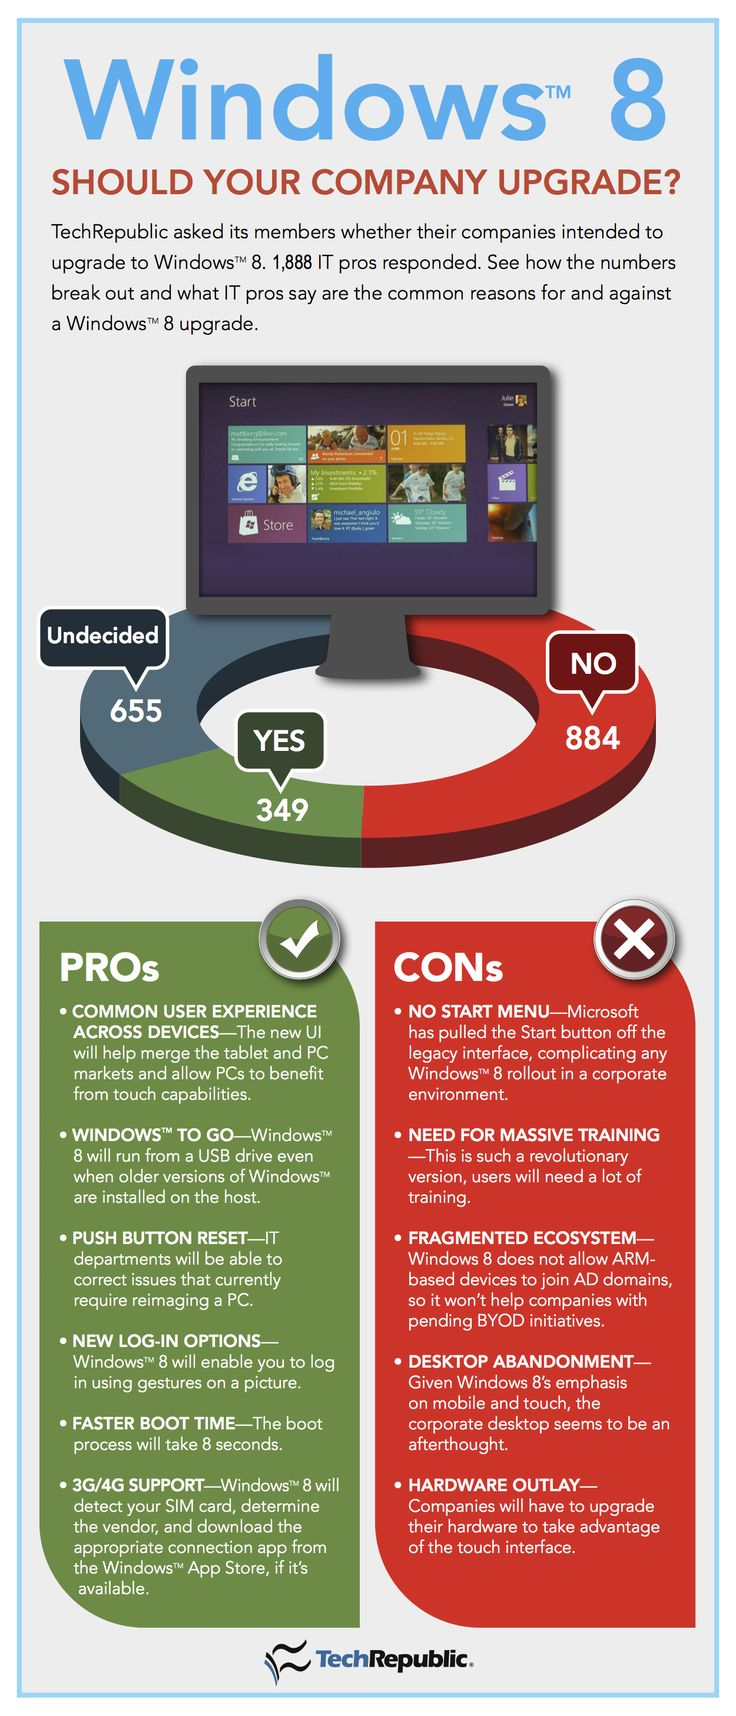 Windows 8, should your company upgrade? #infographic